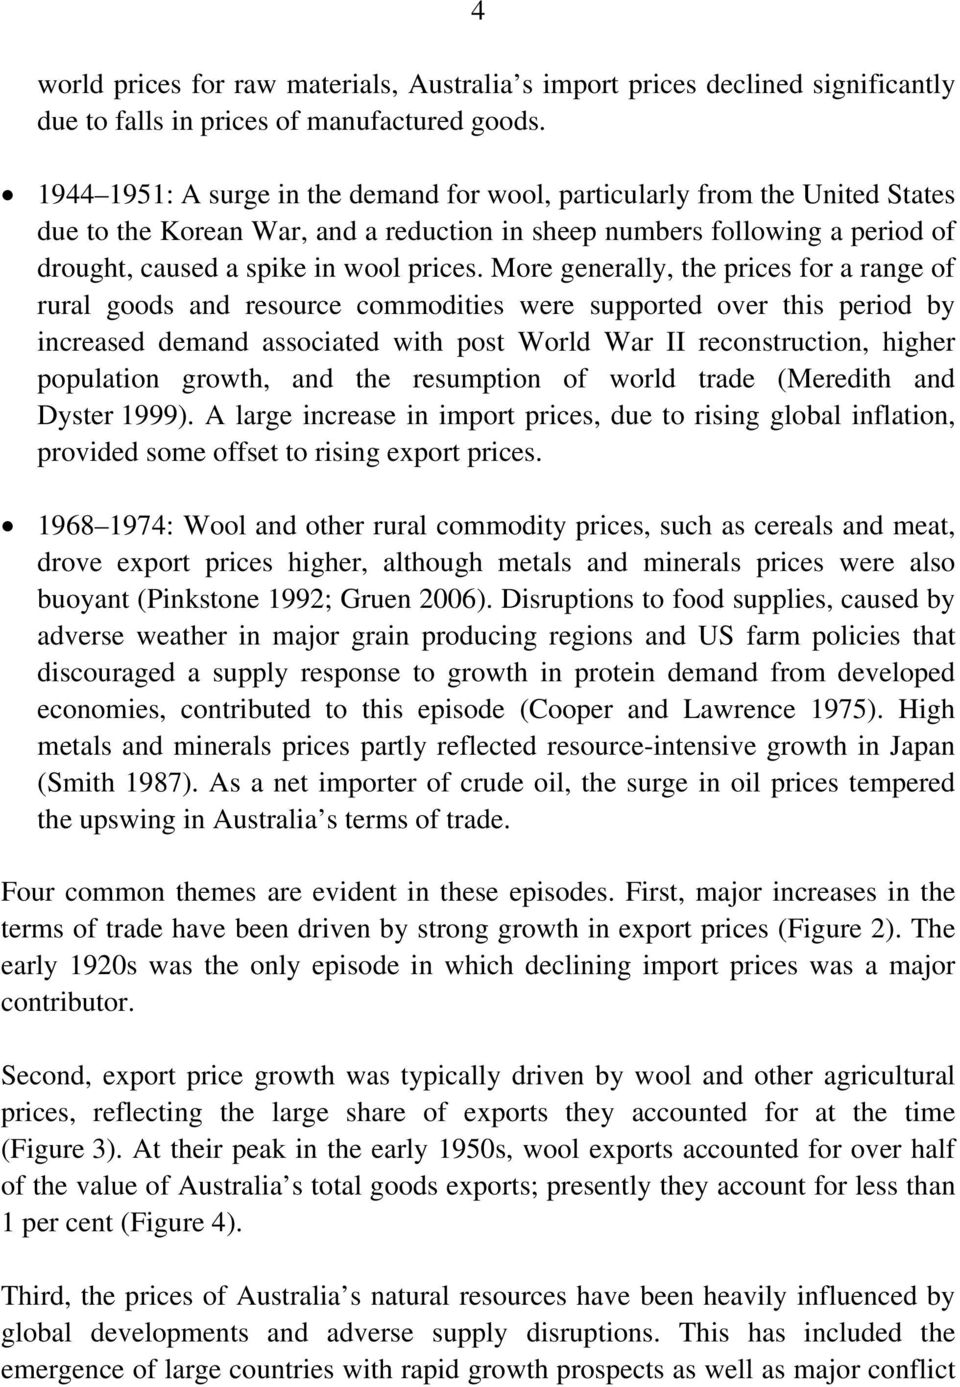 More generally, the prices for a range of rural goods and resource commodities were supported over this period by increased demand associated with post World War II reconstruction, higher population